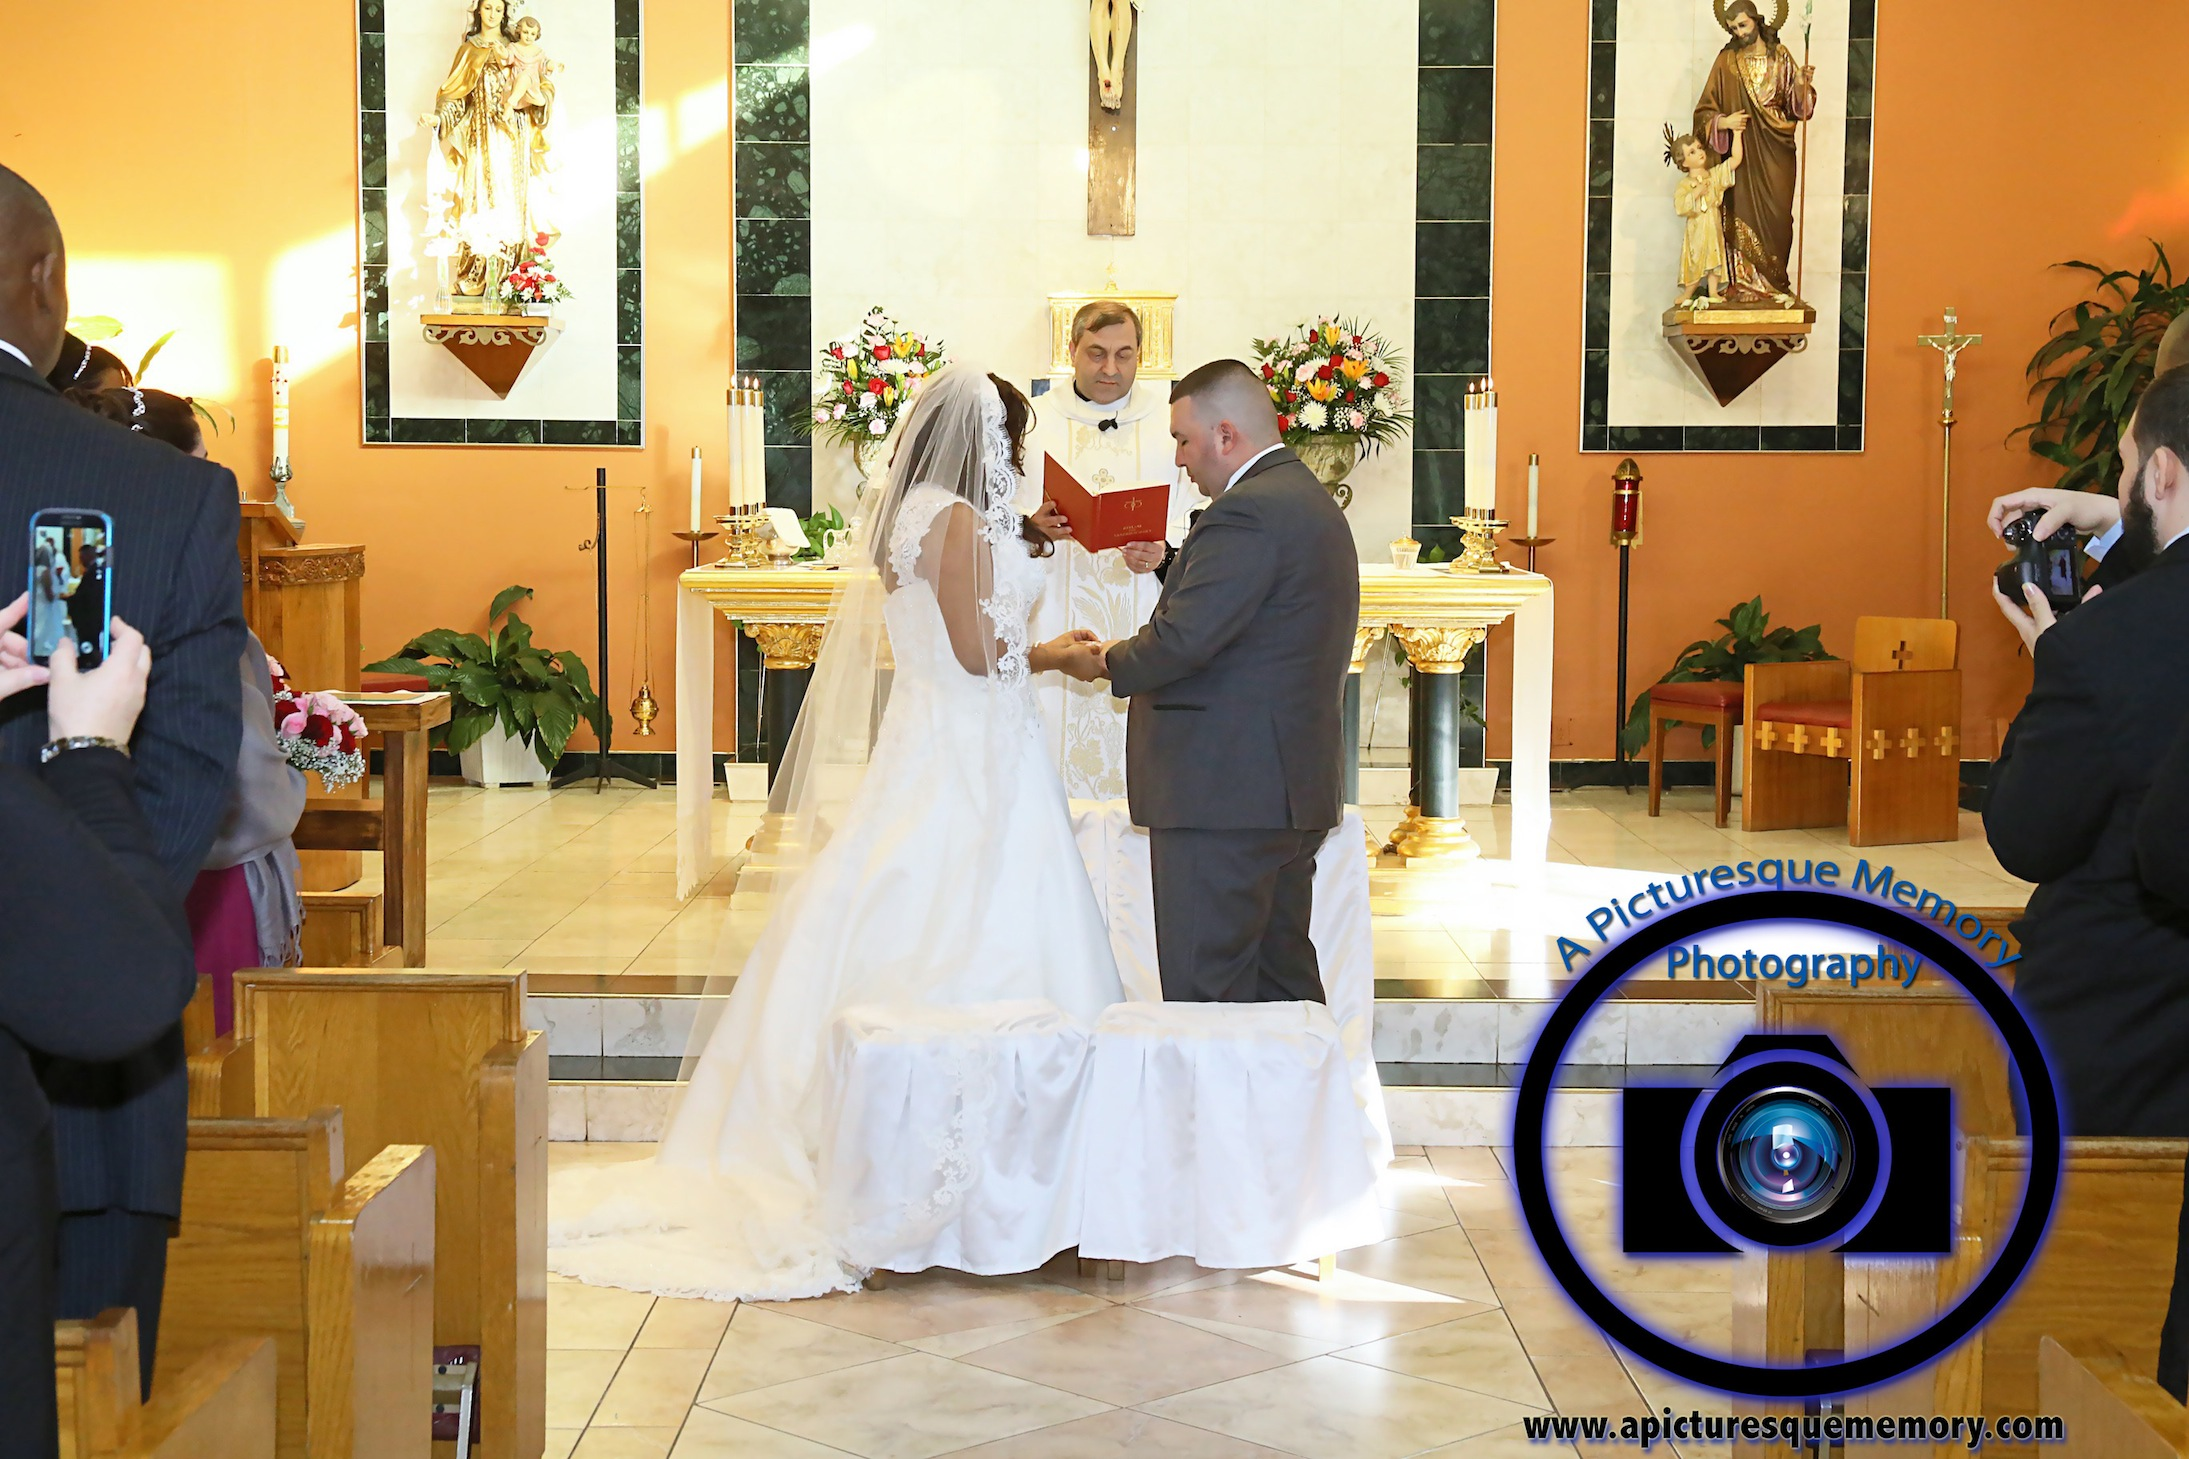 #njwedding, #njweddingphotography, #newbrunswickweddingphotographer#weddingphotos, #apicturesquememoryphotography, #ourladyofmountcarmelweddingphotographer, #weddingceremony, #brideandgroom, #ringexchange